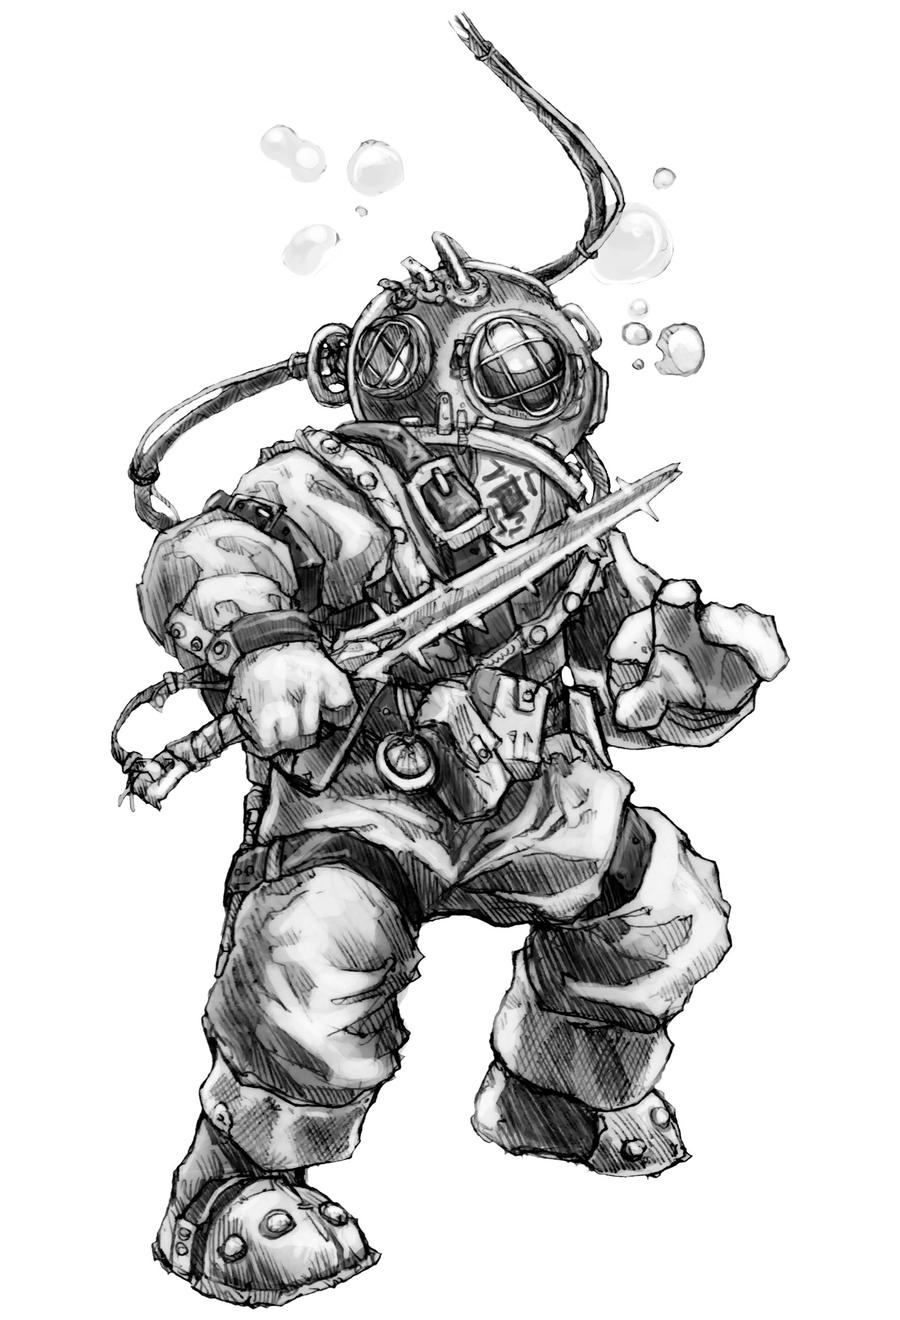 1000+ images about Deep sea diving on Pinterest